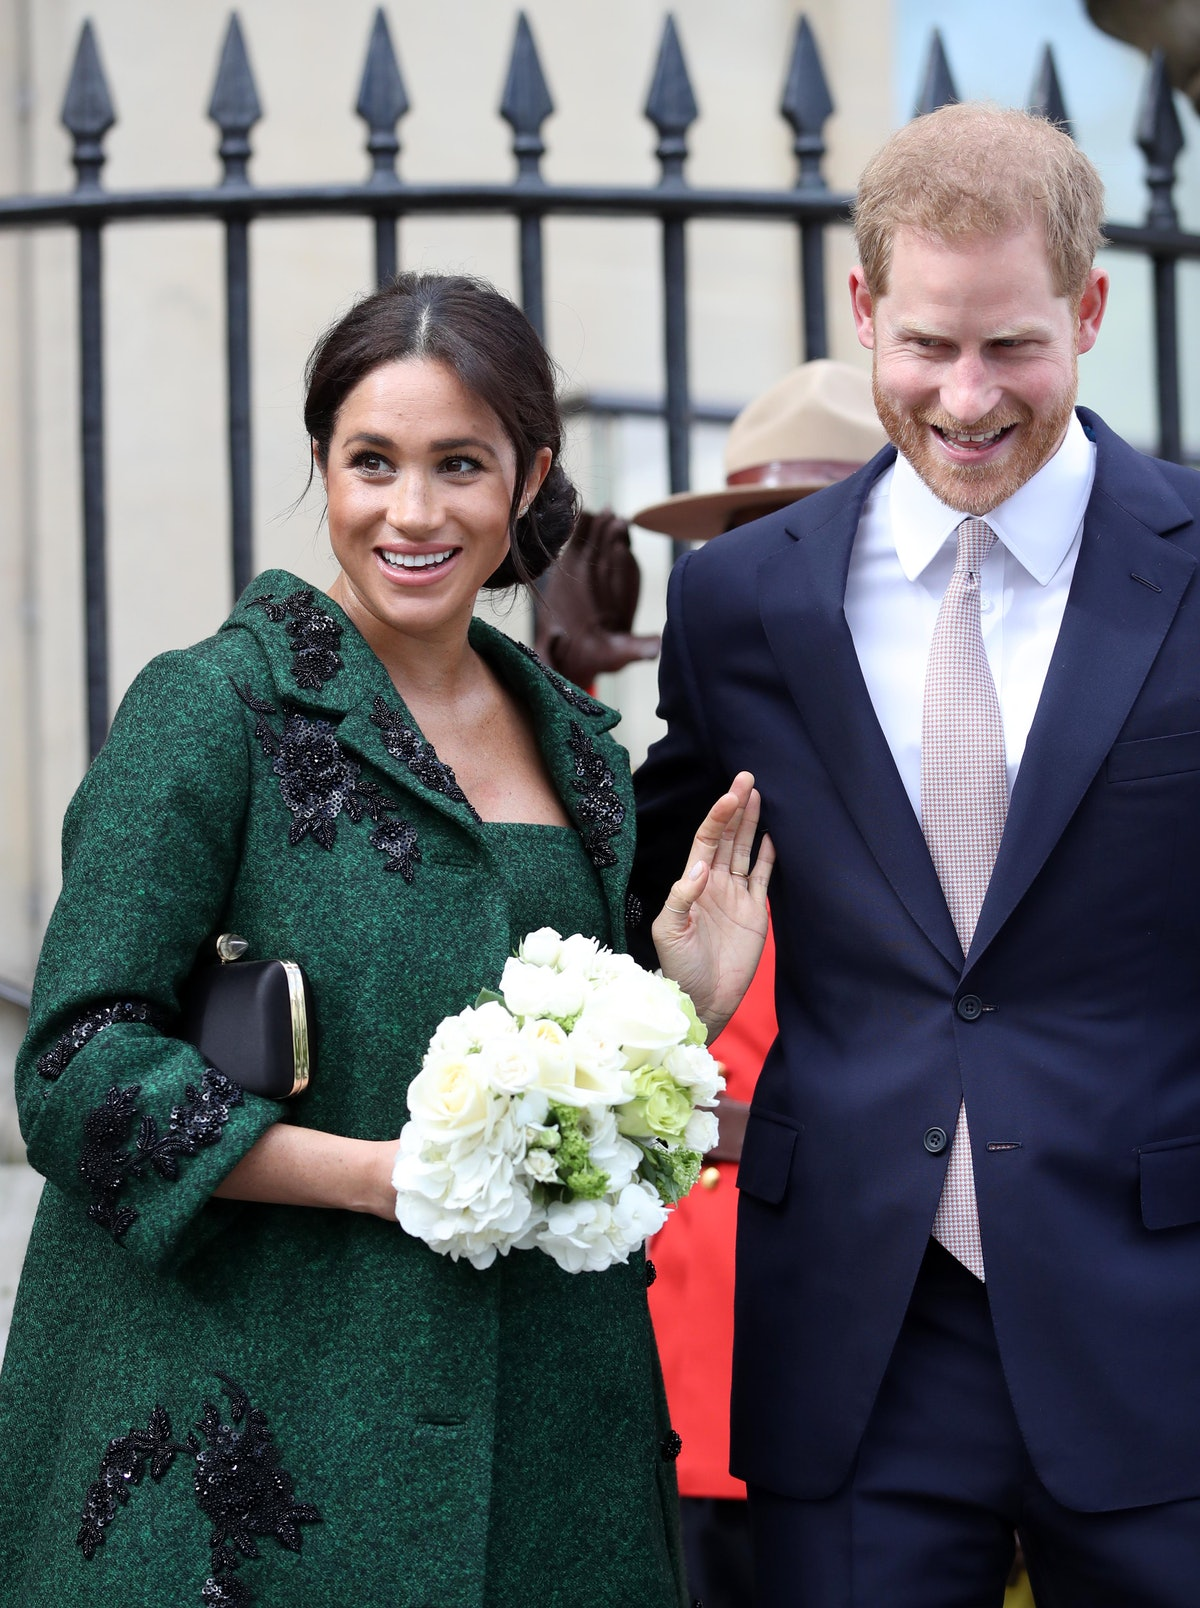 How Long Will Meghan Markle's Maternity Leave Be? Kate Middleton's Time Away With Her Royal Kiddos May Provide A Clue